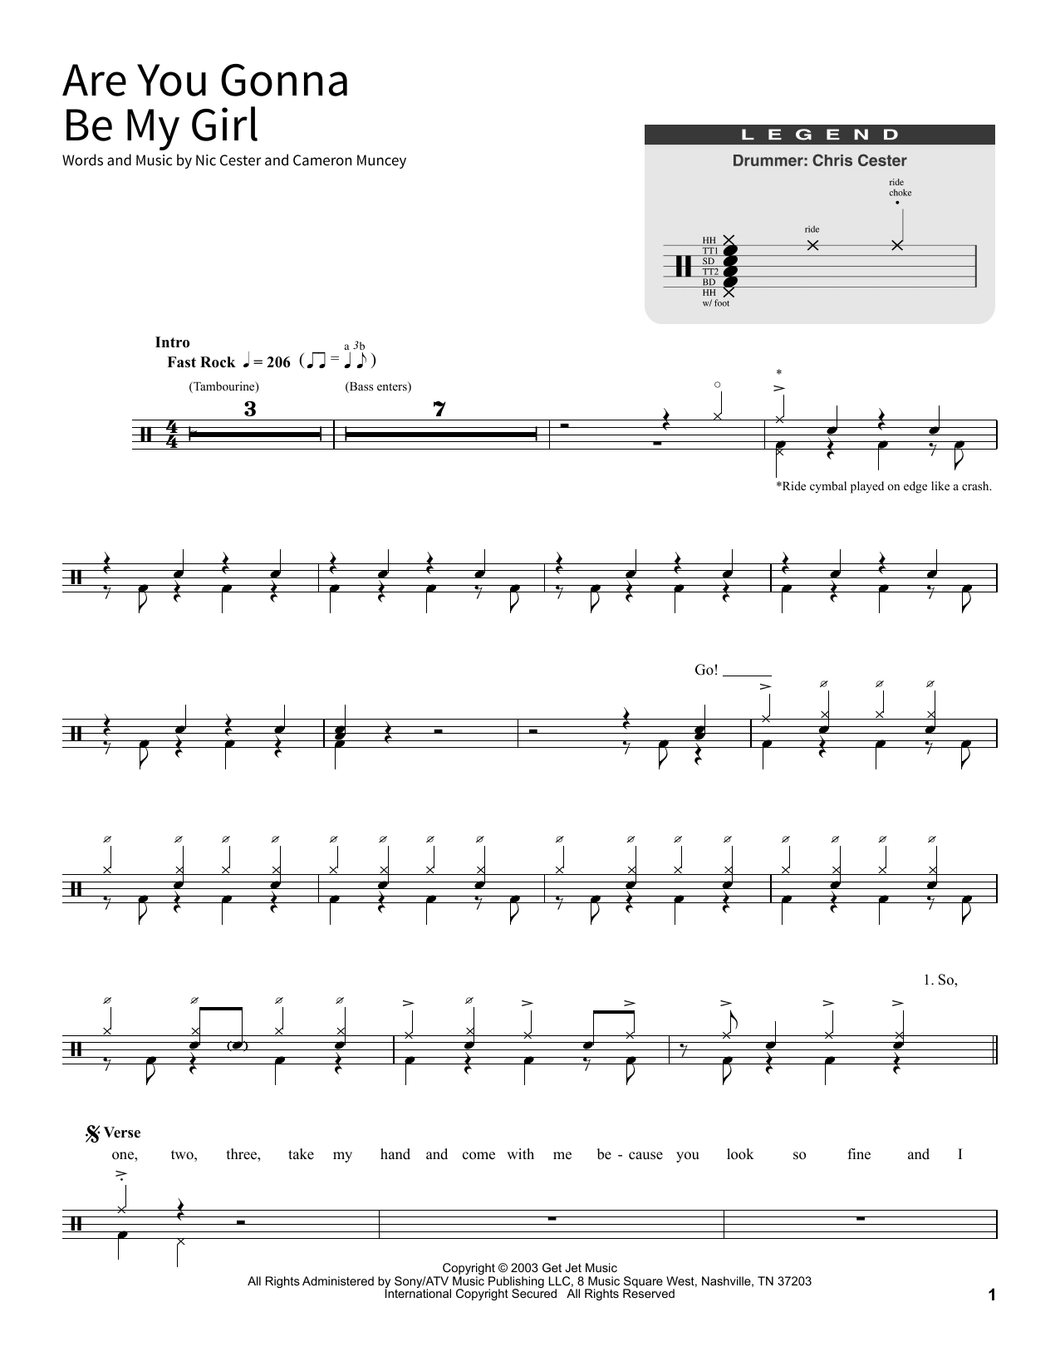 Are You Gonna Be My Girl - Jet - Full Drum Transcription / Drum Sheet Music - SheetMusicDirect SORD